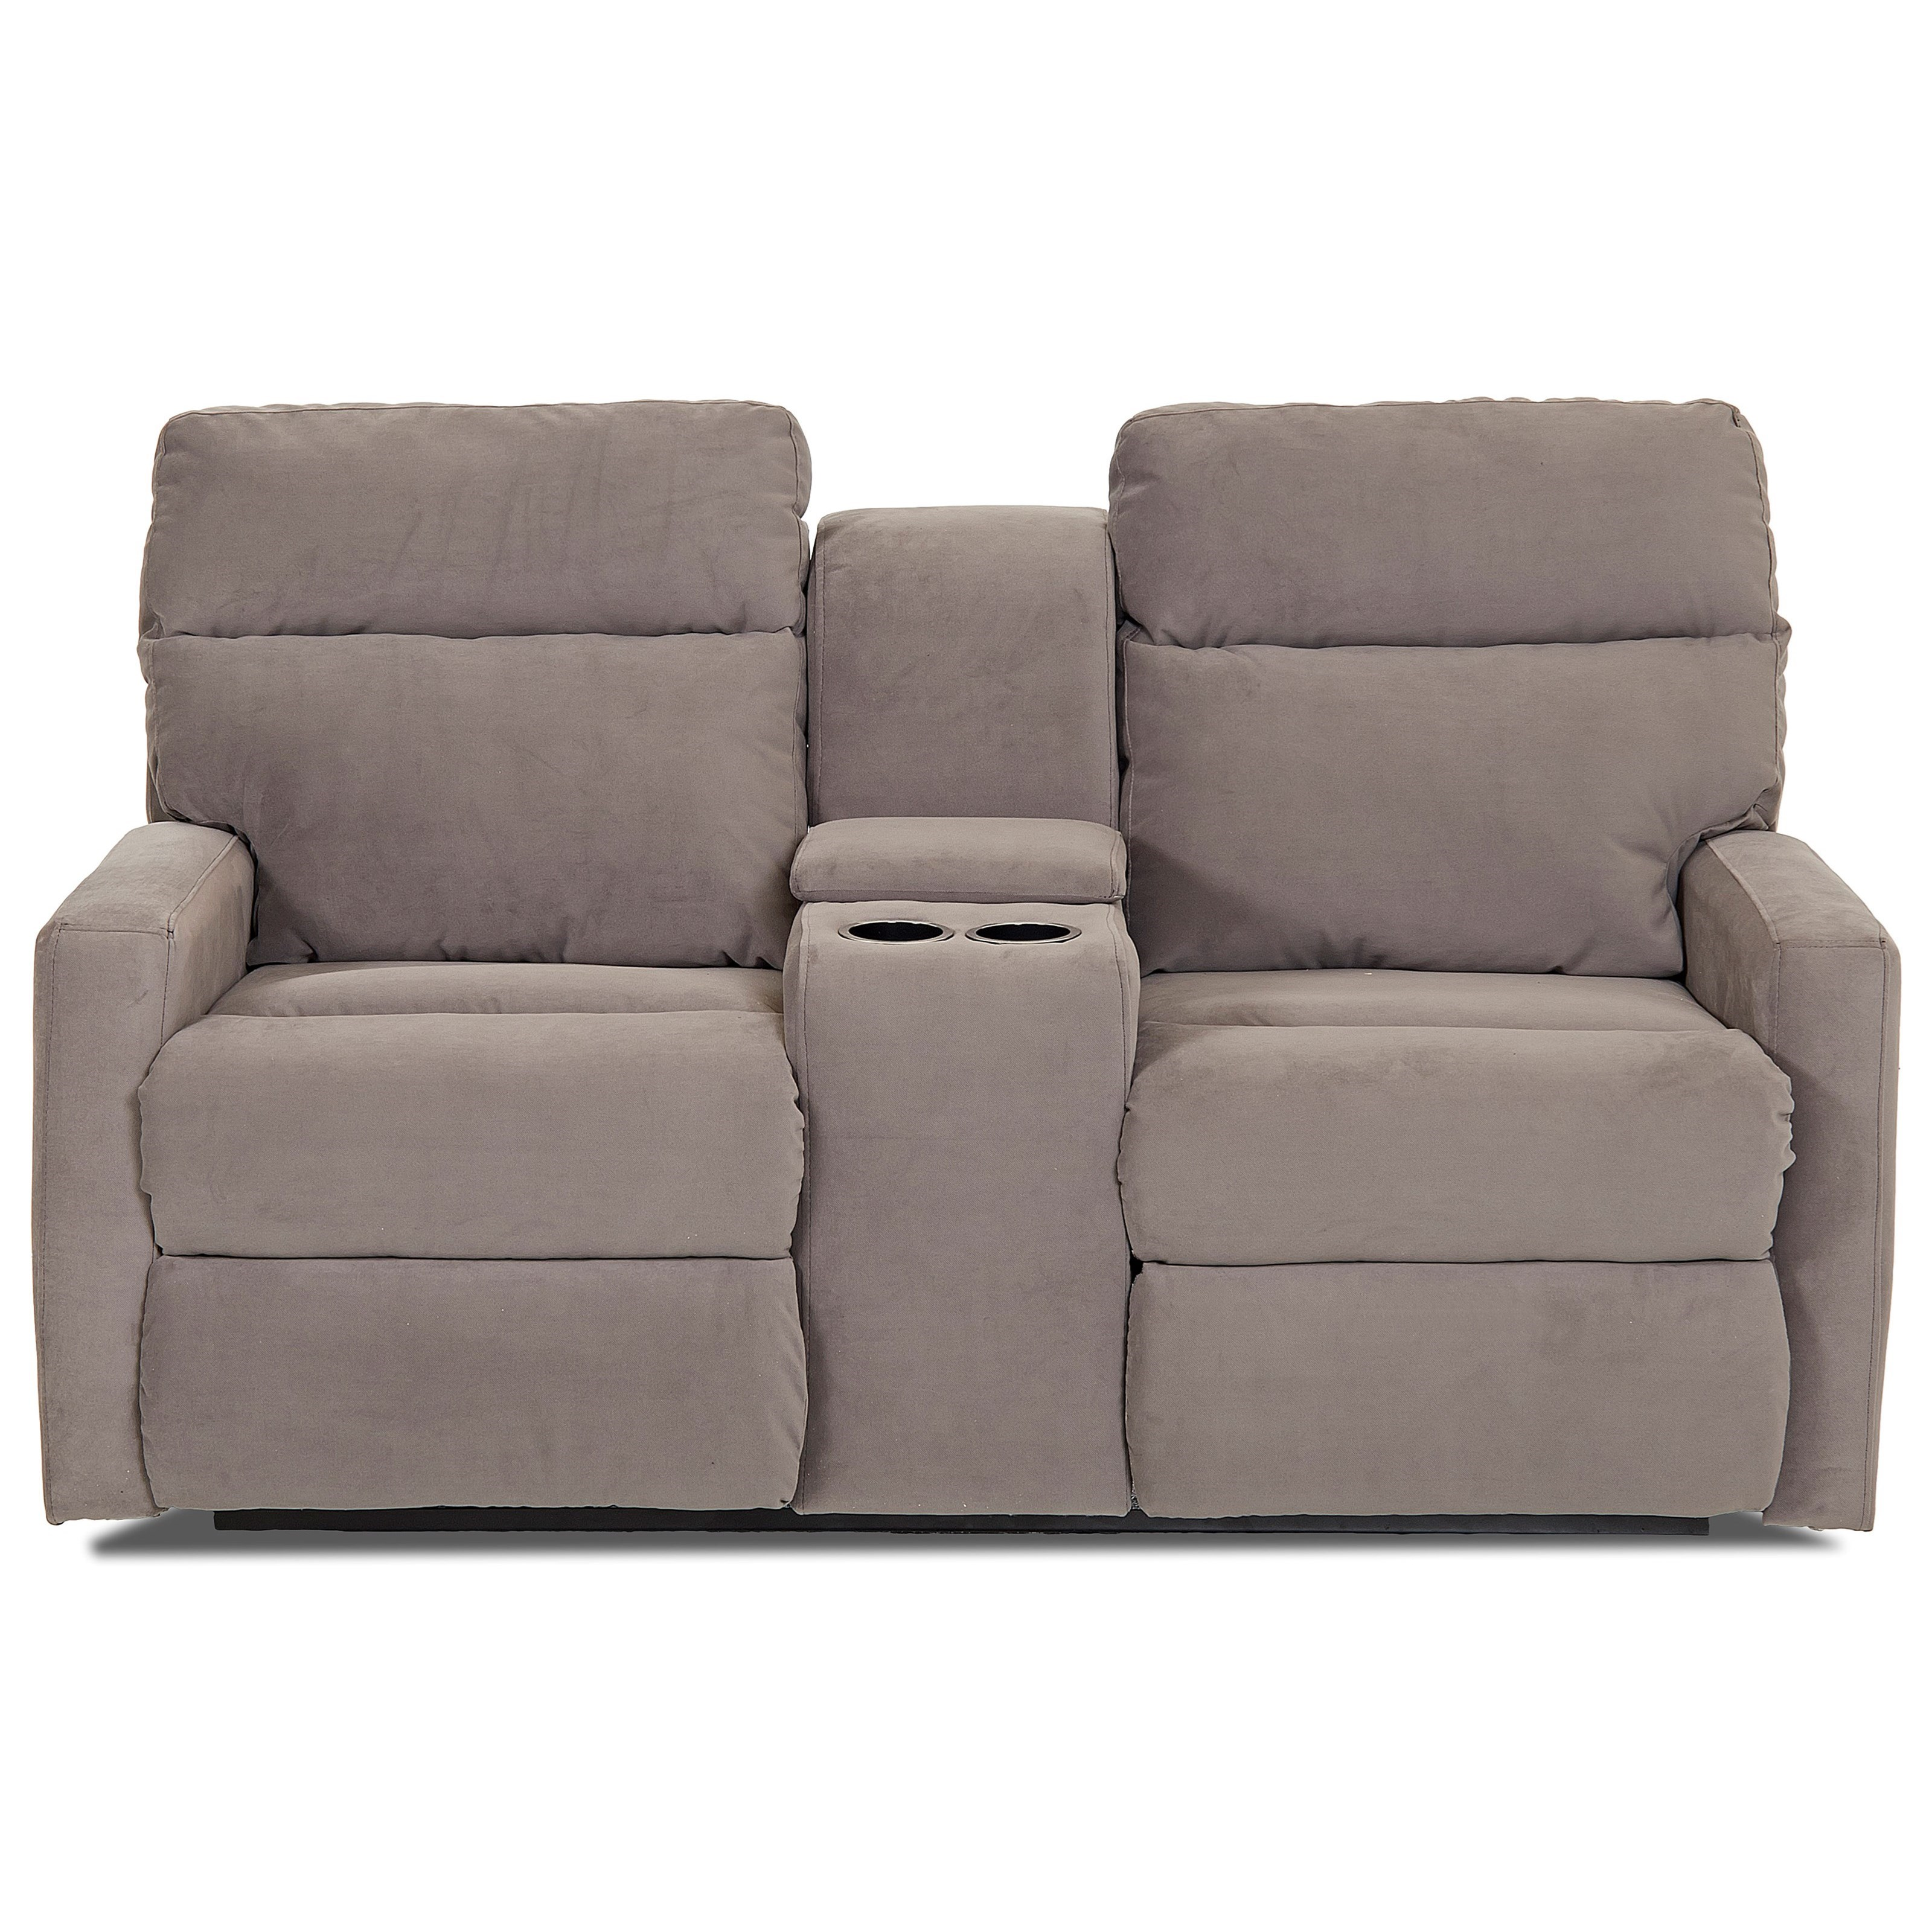 Daphne Power Console Reclining Loveseat by Klaussner at Northeast Factory Direct